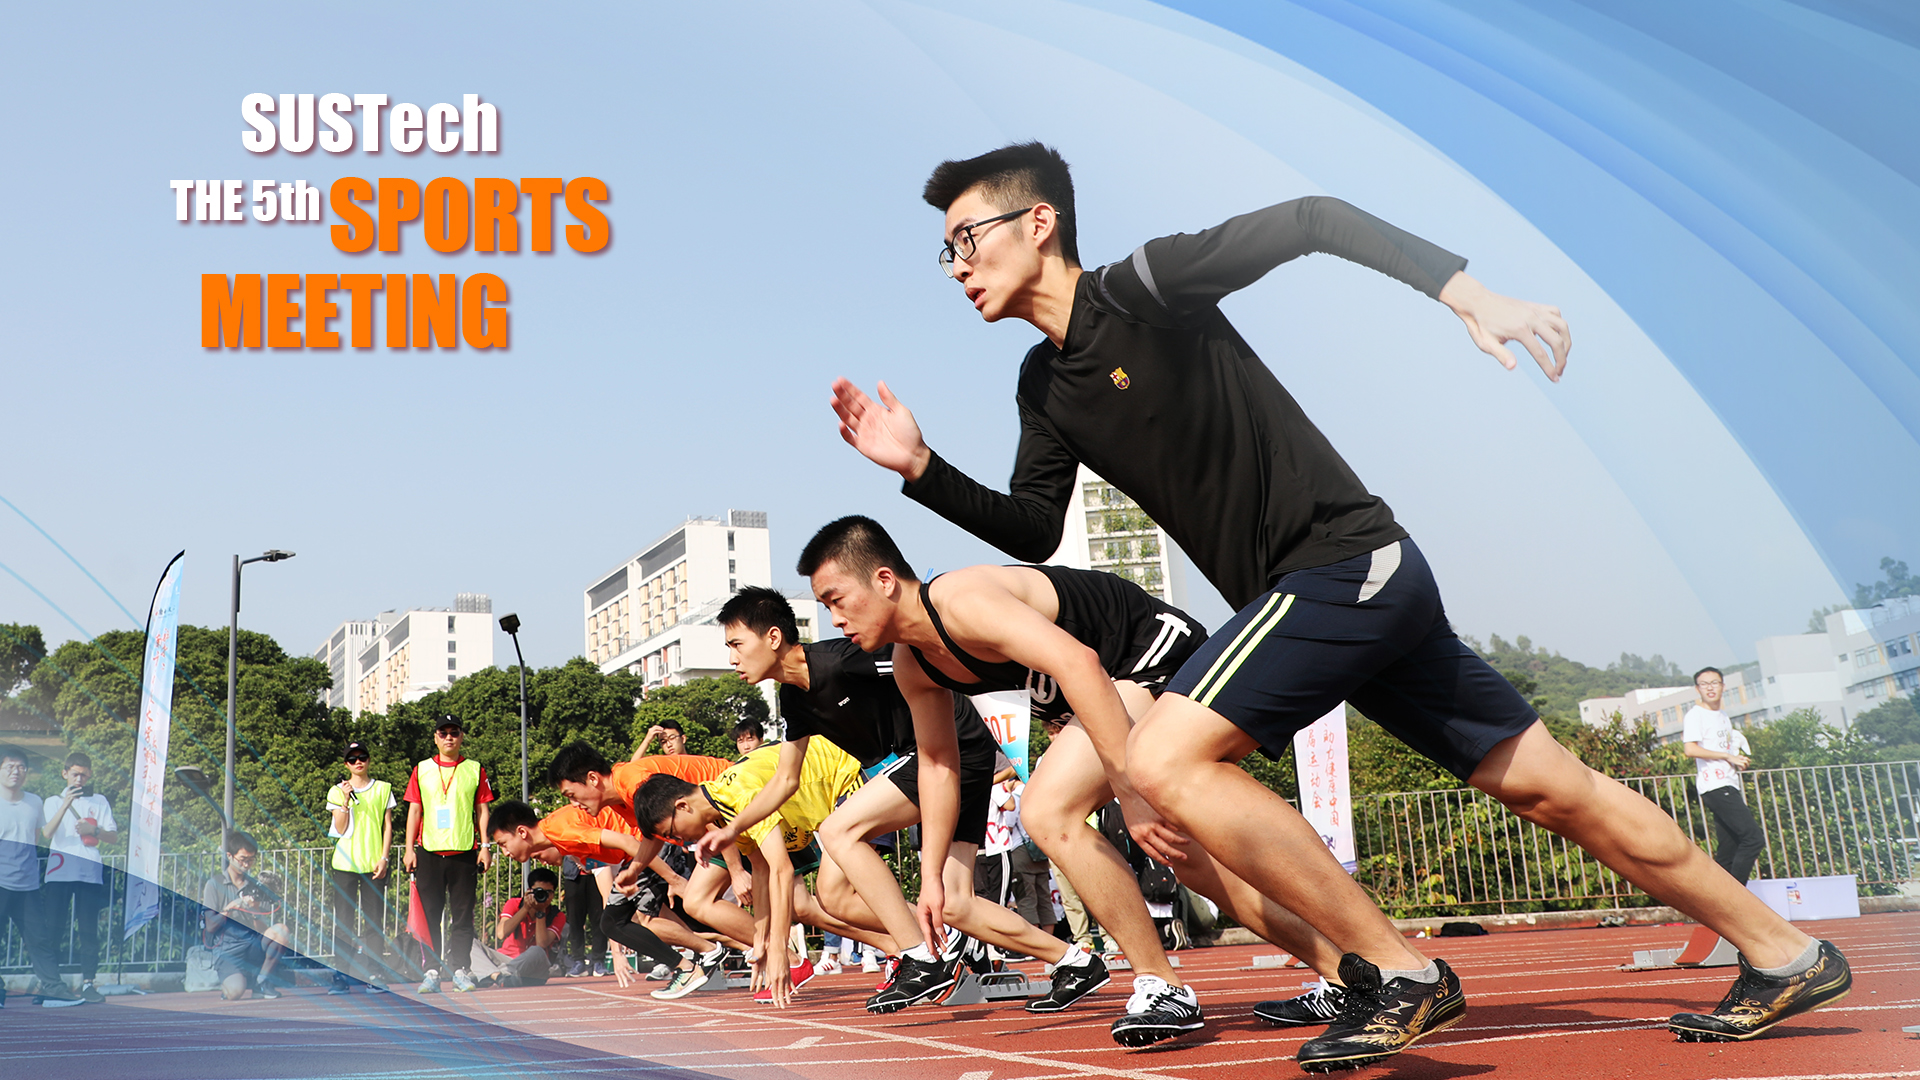 5th Annual SUSTech Sports Meeting successfully held